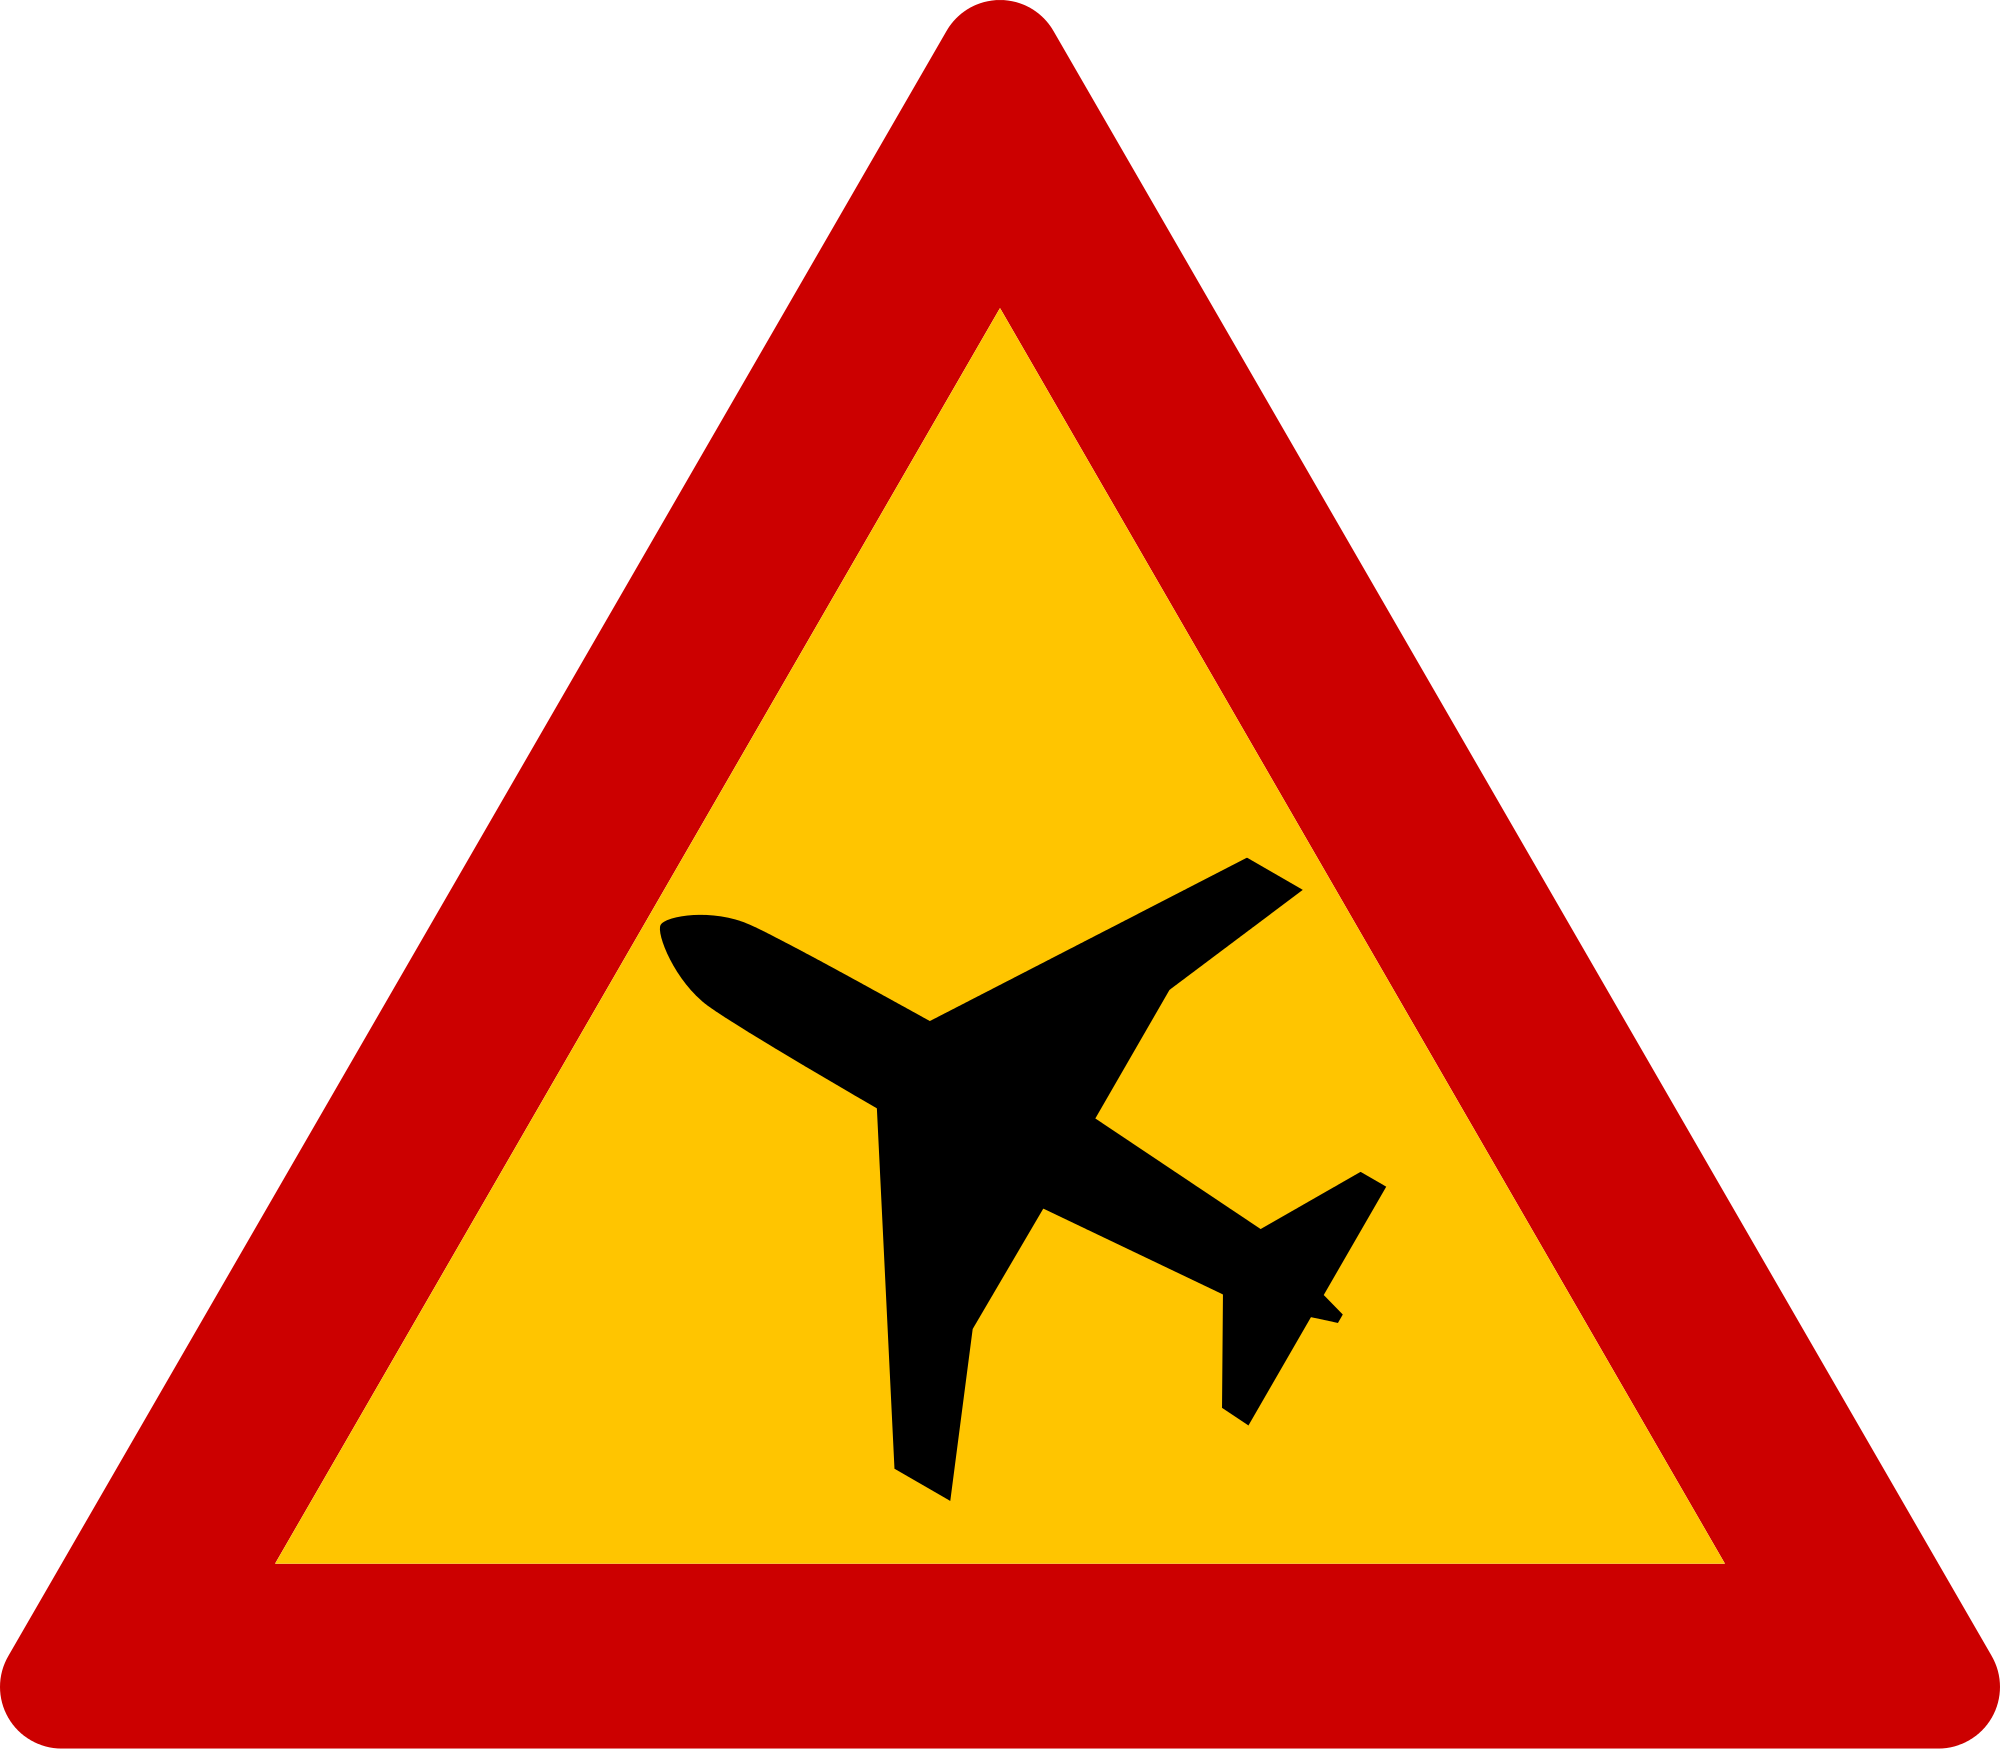 Flying sign photo